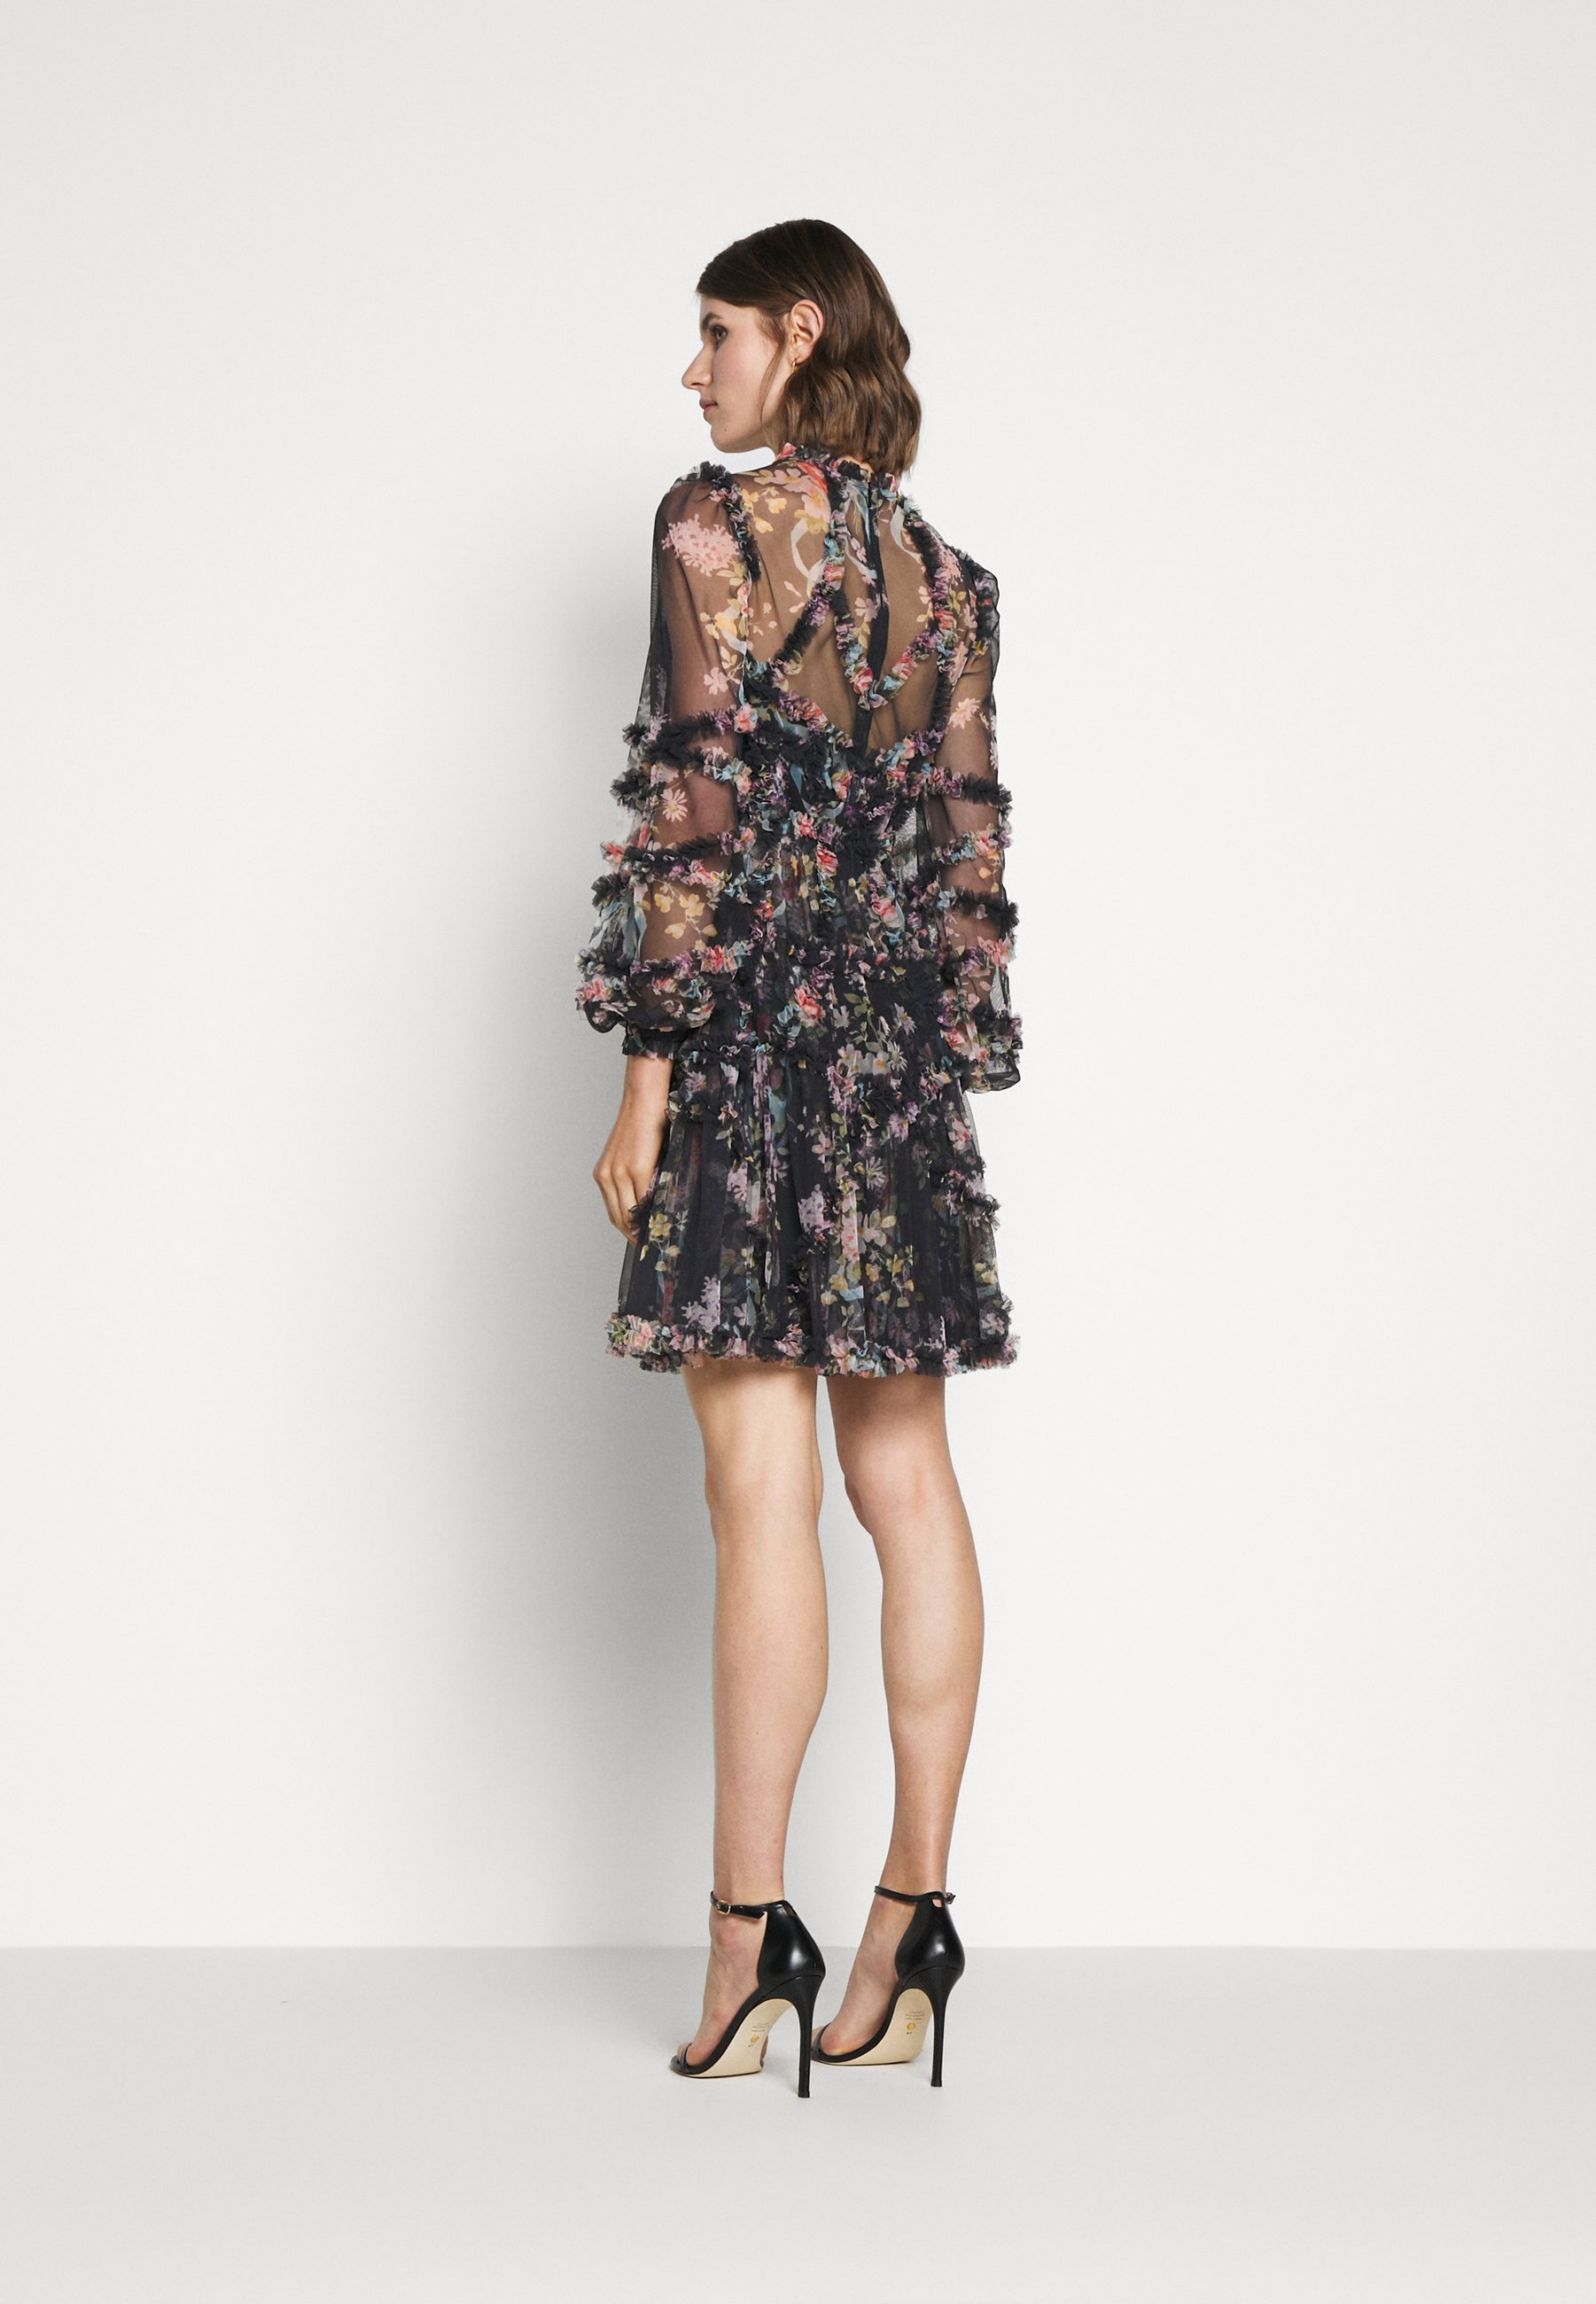 Needle & Thread Floral Diamond Ruffle Dress - Cocktailkjoler / Festkjoler Graphite